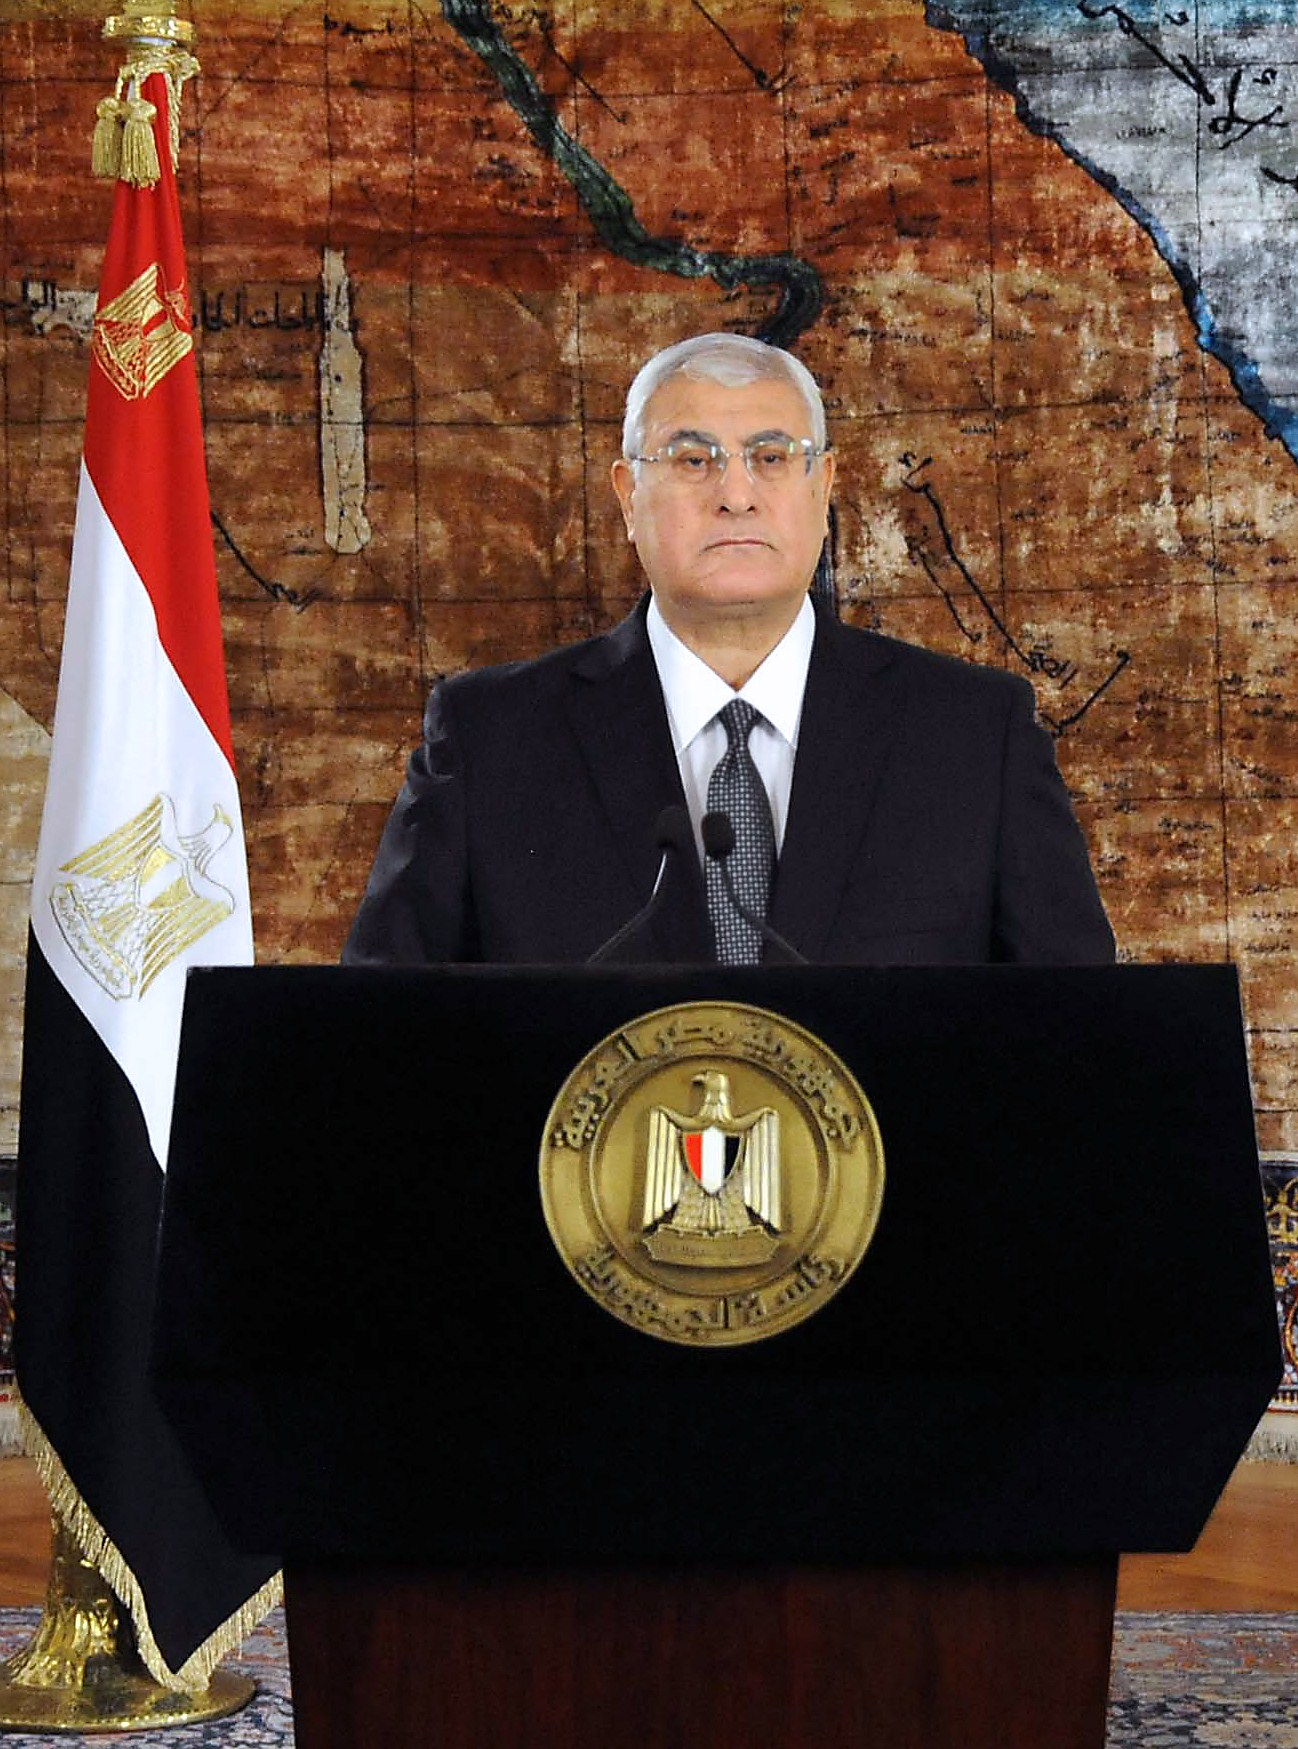 Outgoing President Adly Mansour. (AFP PHOTO EGYPTIAN PRESIDENCY)